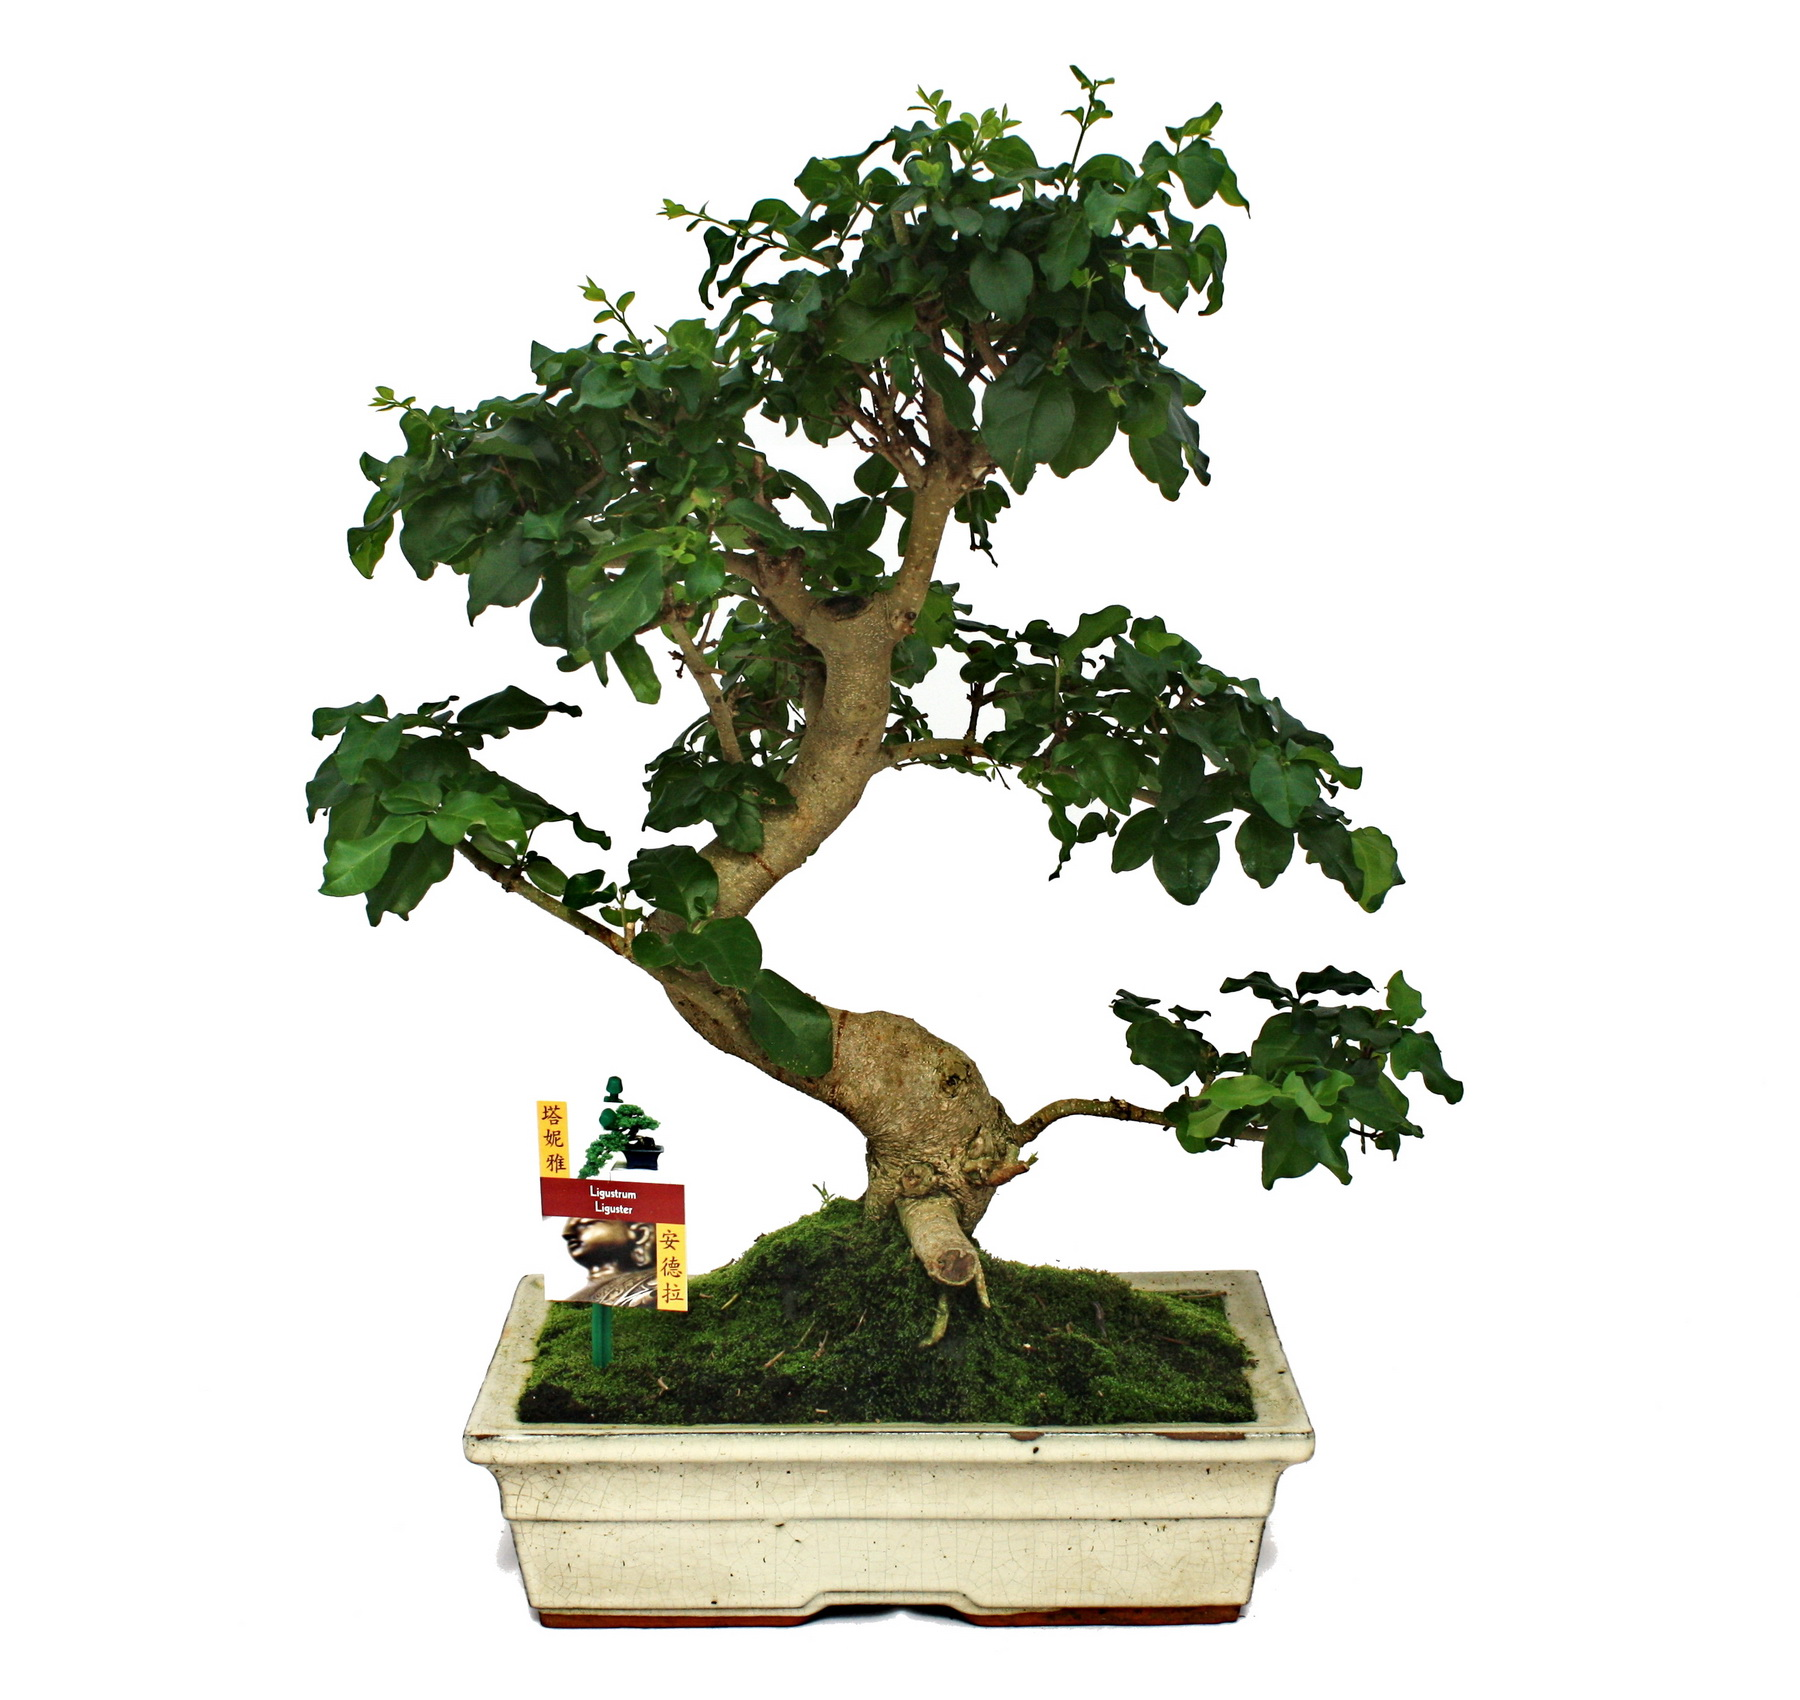 bonsai chinesischer liguster ca 12 15 jahre. Black Bedroom Furniture Sets. Home Design Ideas